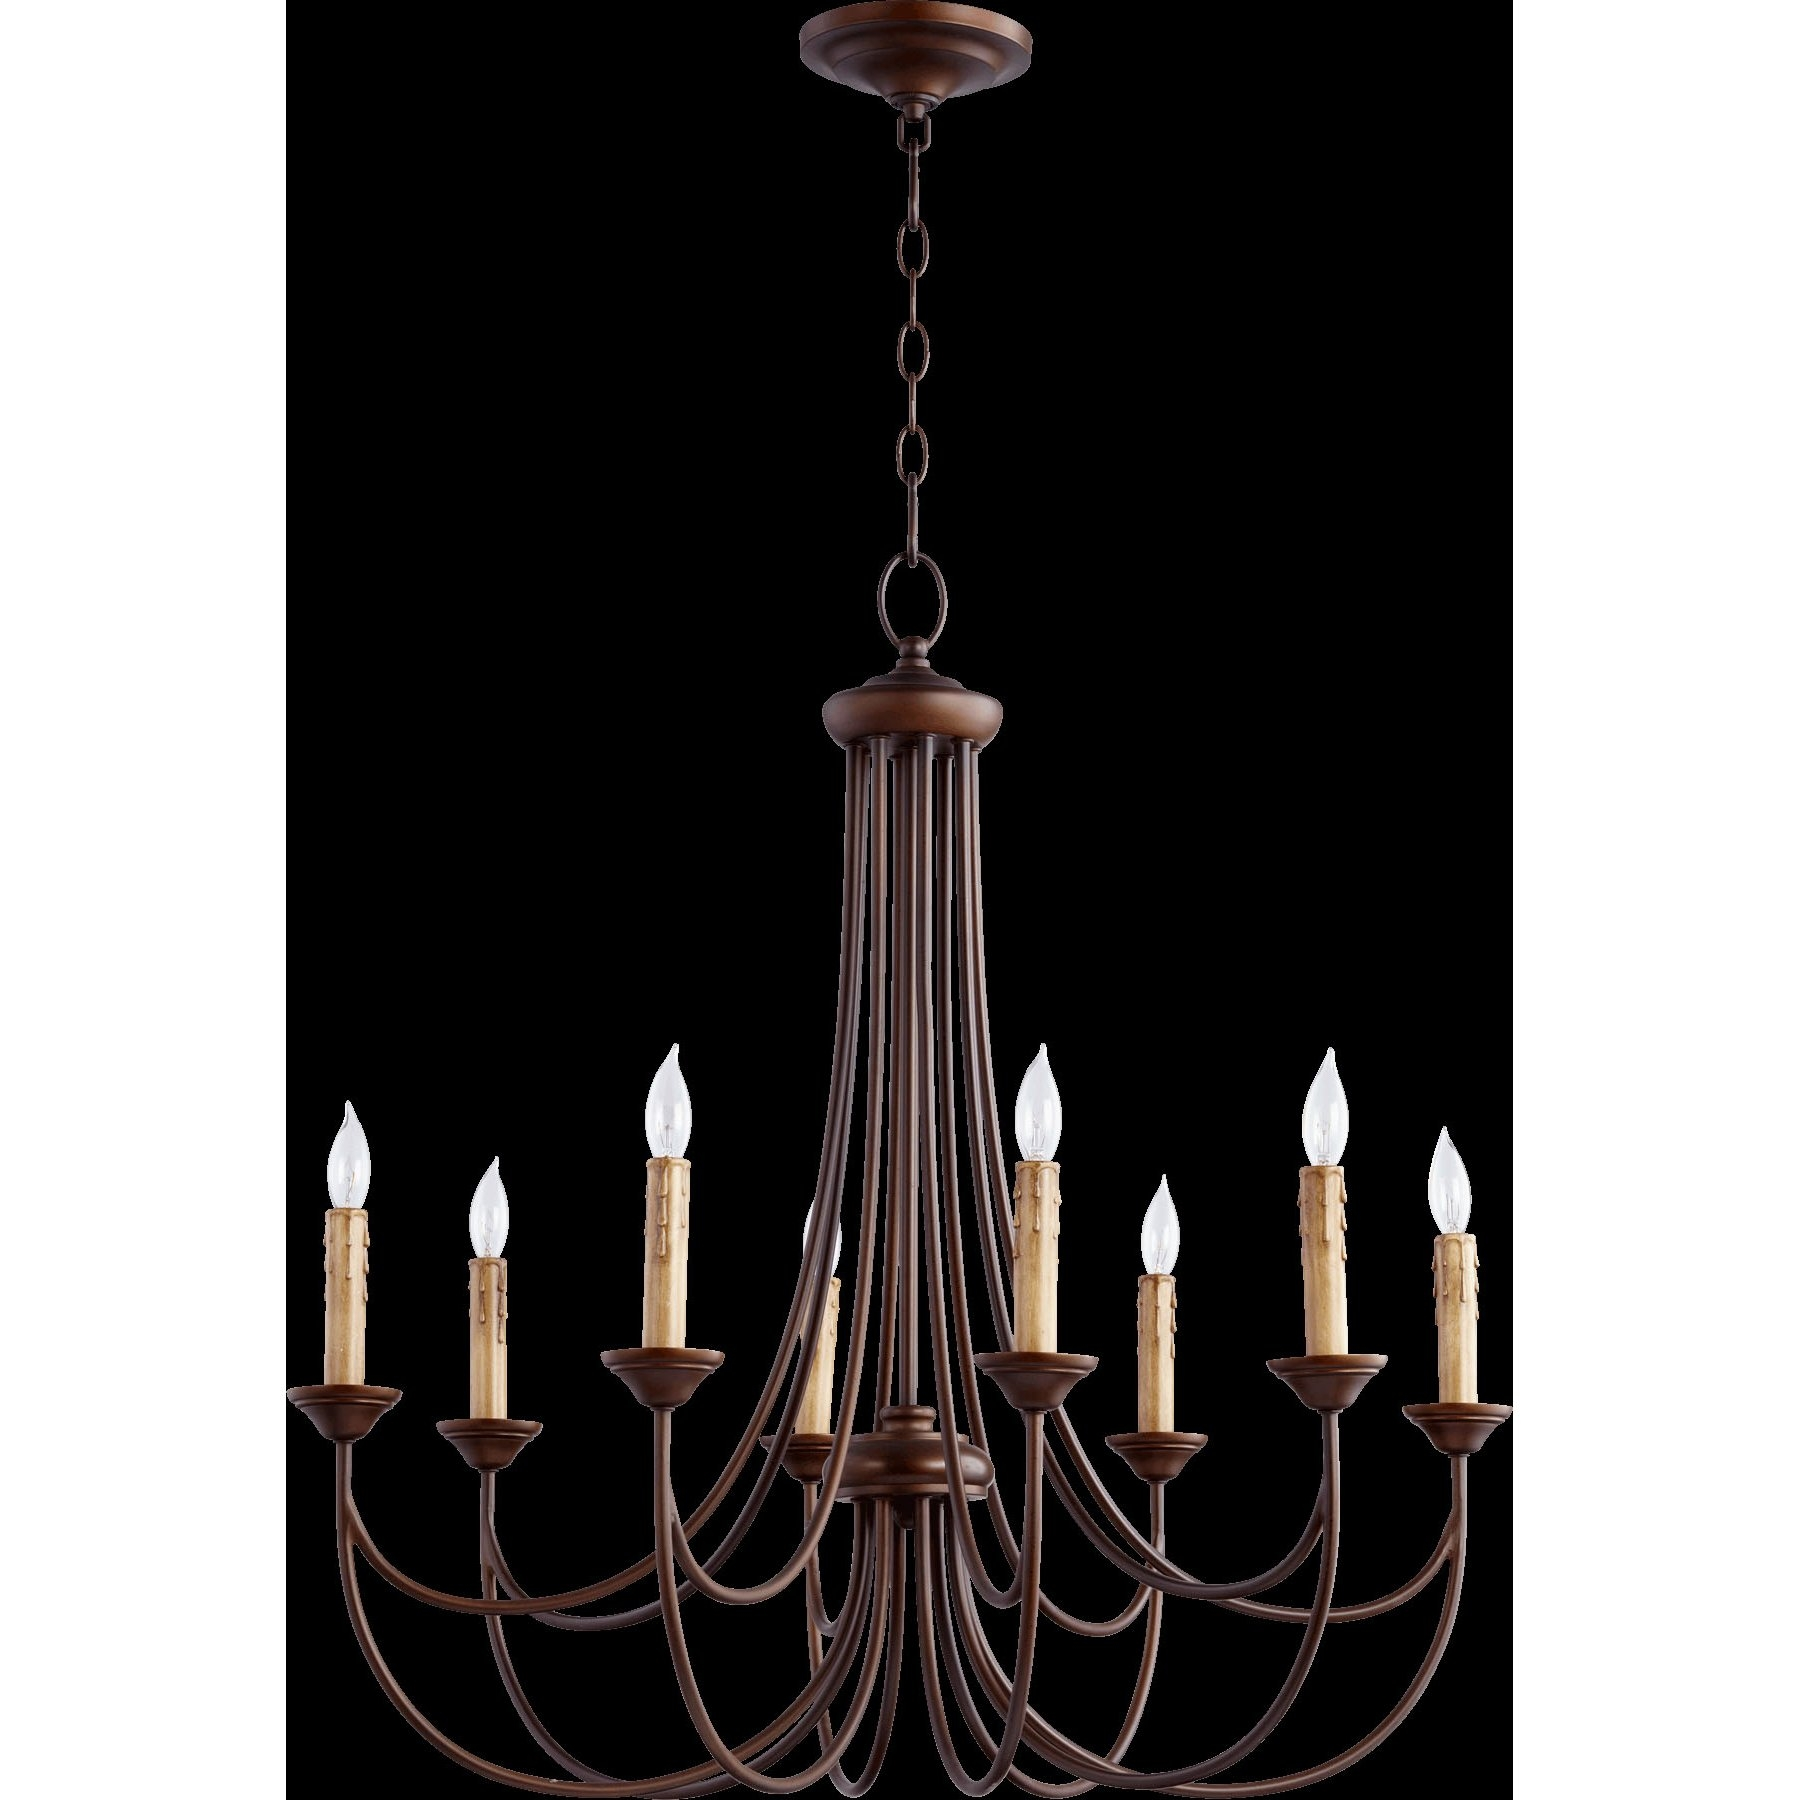 Quorum Brooks 8 Light Candle Style Chandelier Reviews Wayfair With Candle Light Chandelier (View 15 of 15)